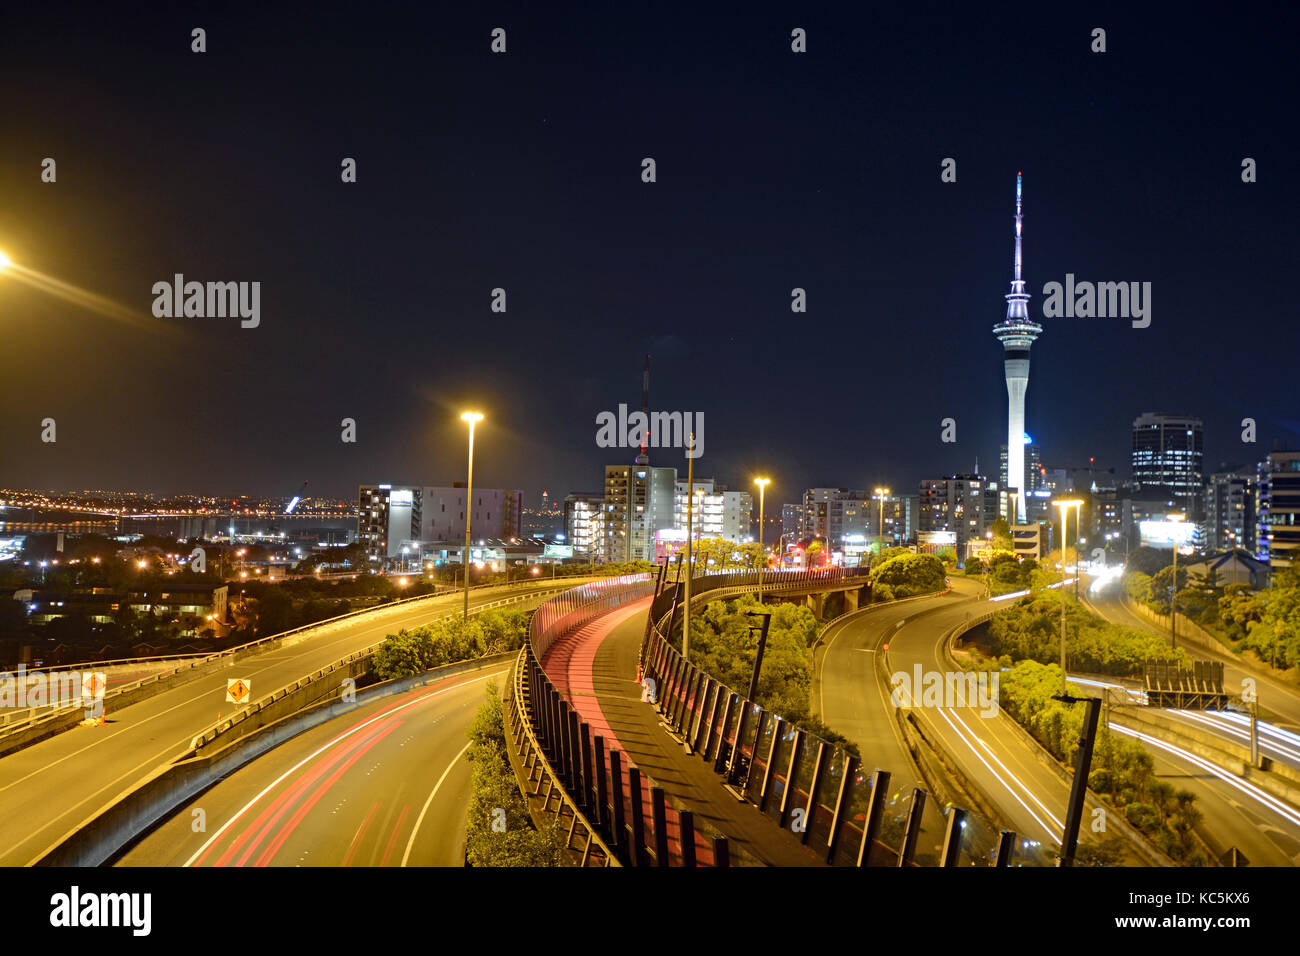 Auckland_City_Spaghetti_junction_by Night - Stock Image